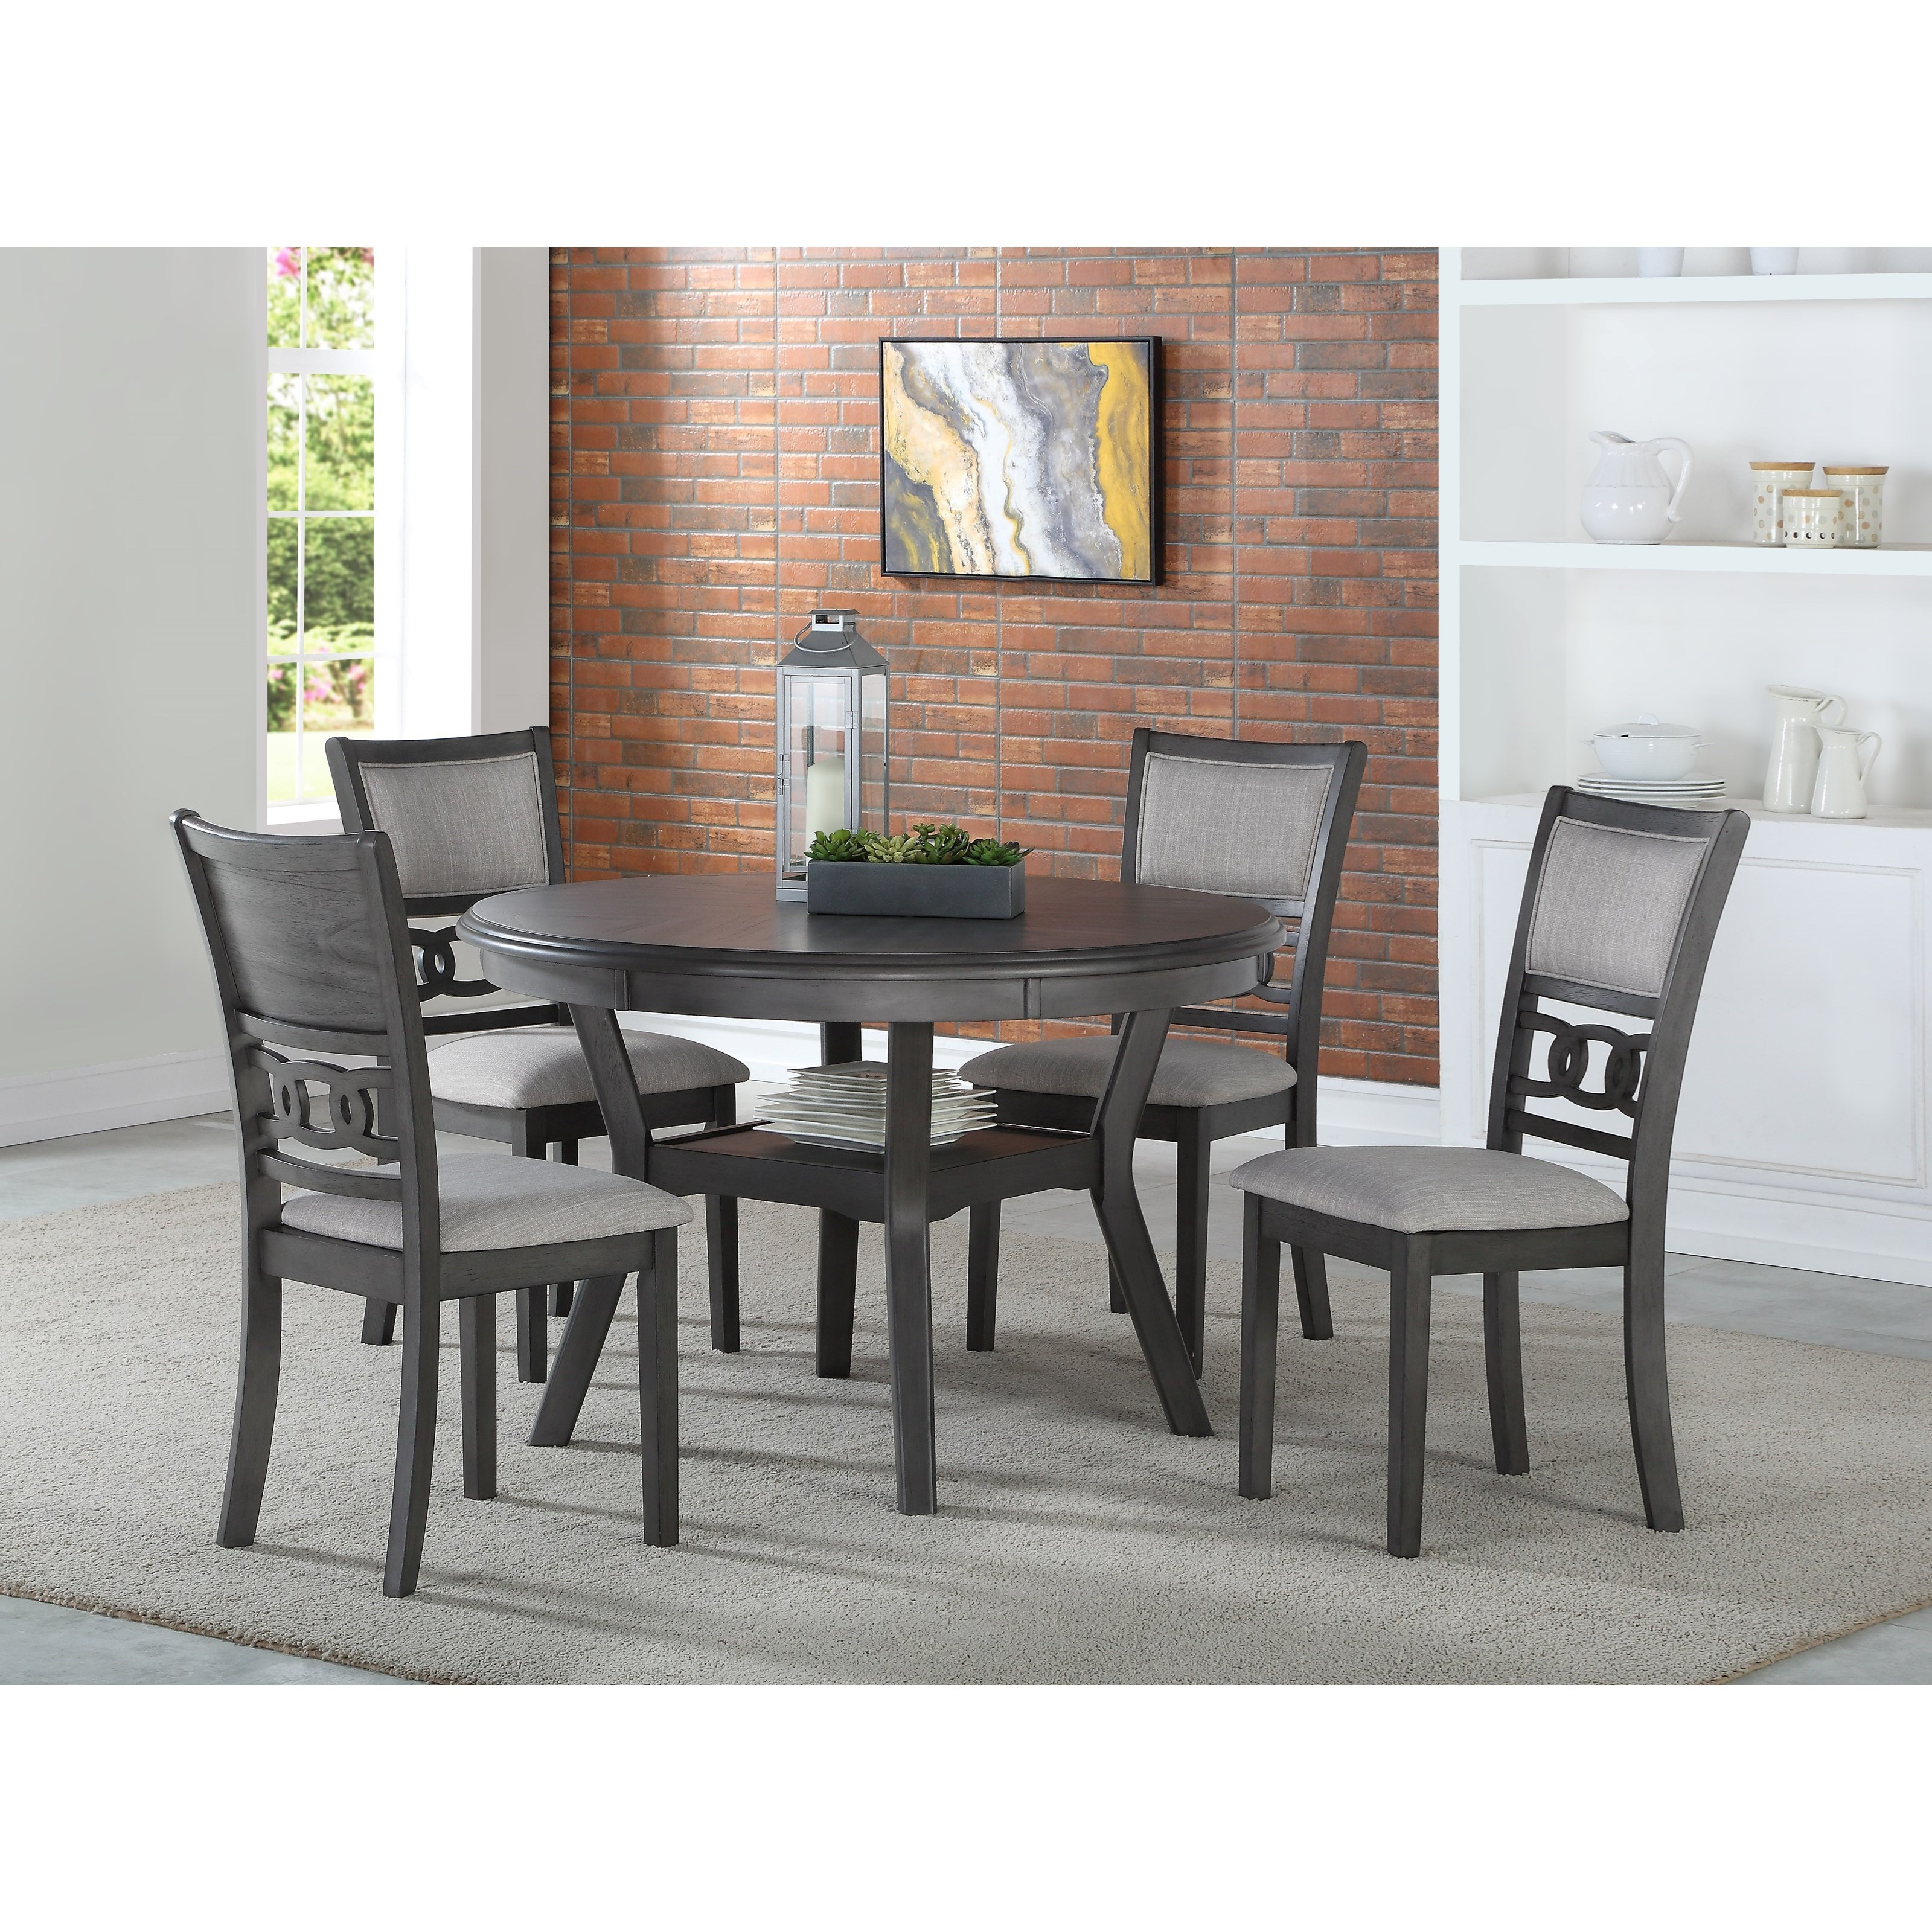 Gia Dining Table and Chair Set with 4 Chairs by New Classic at Beck's Furniture